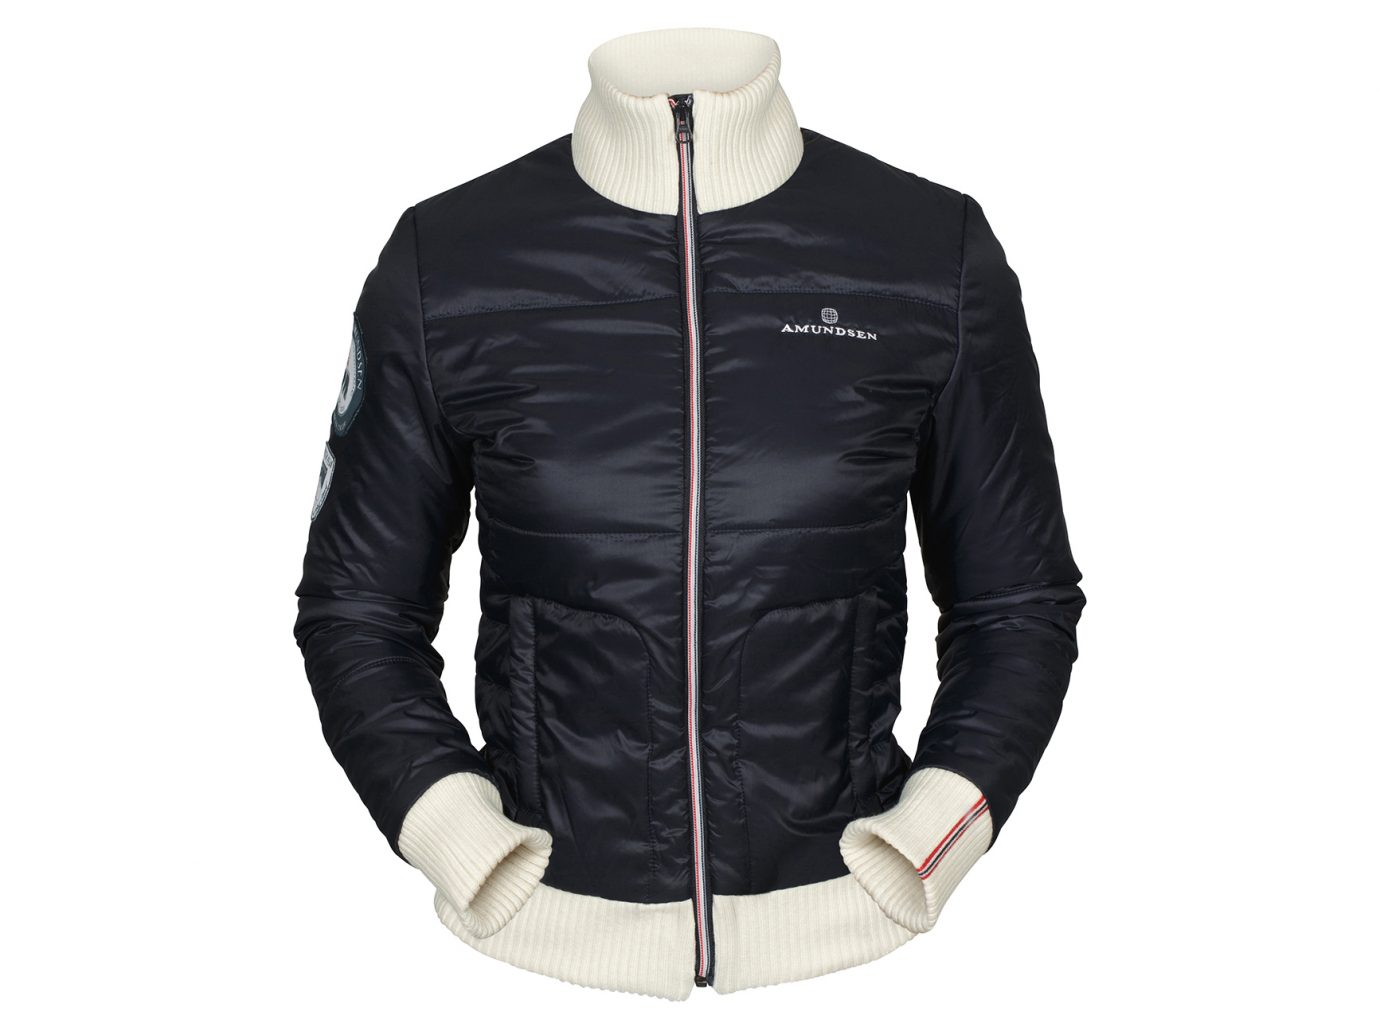 Amundson Sports Breguet Jacket